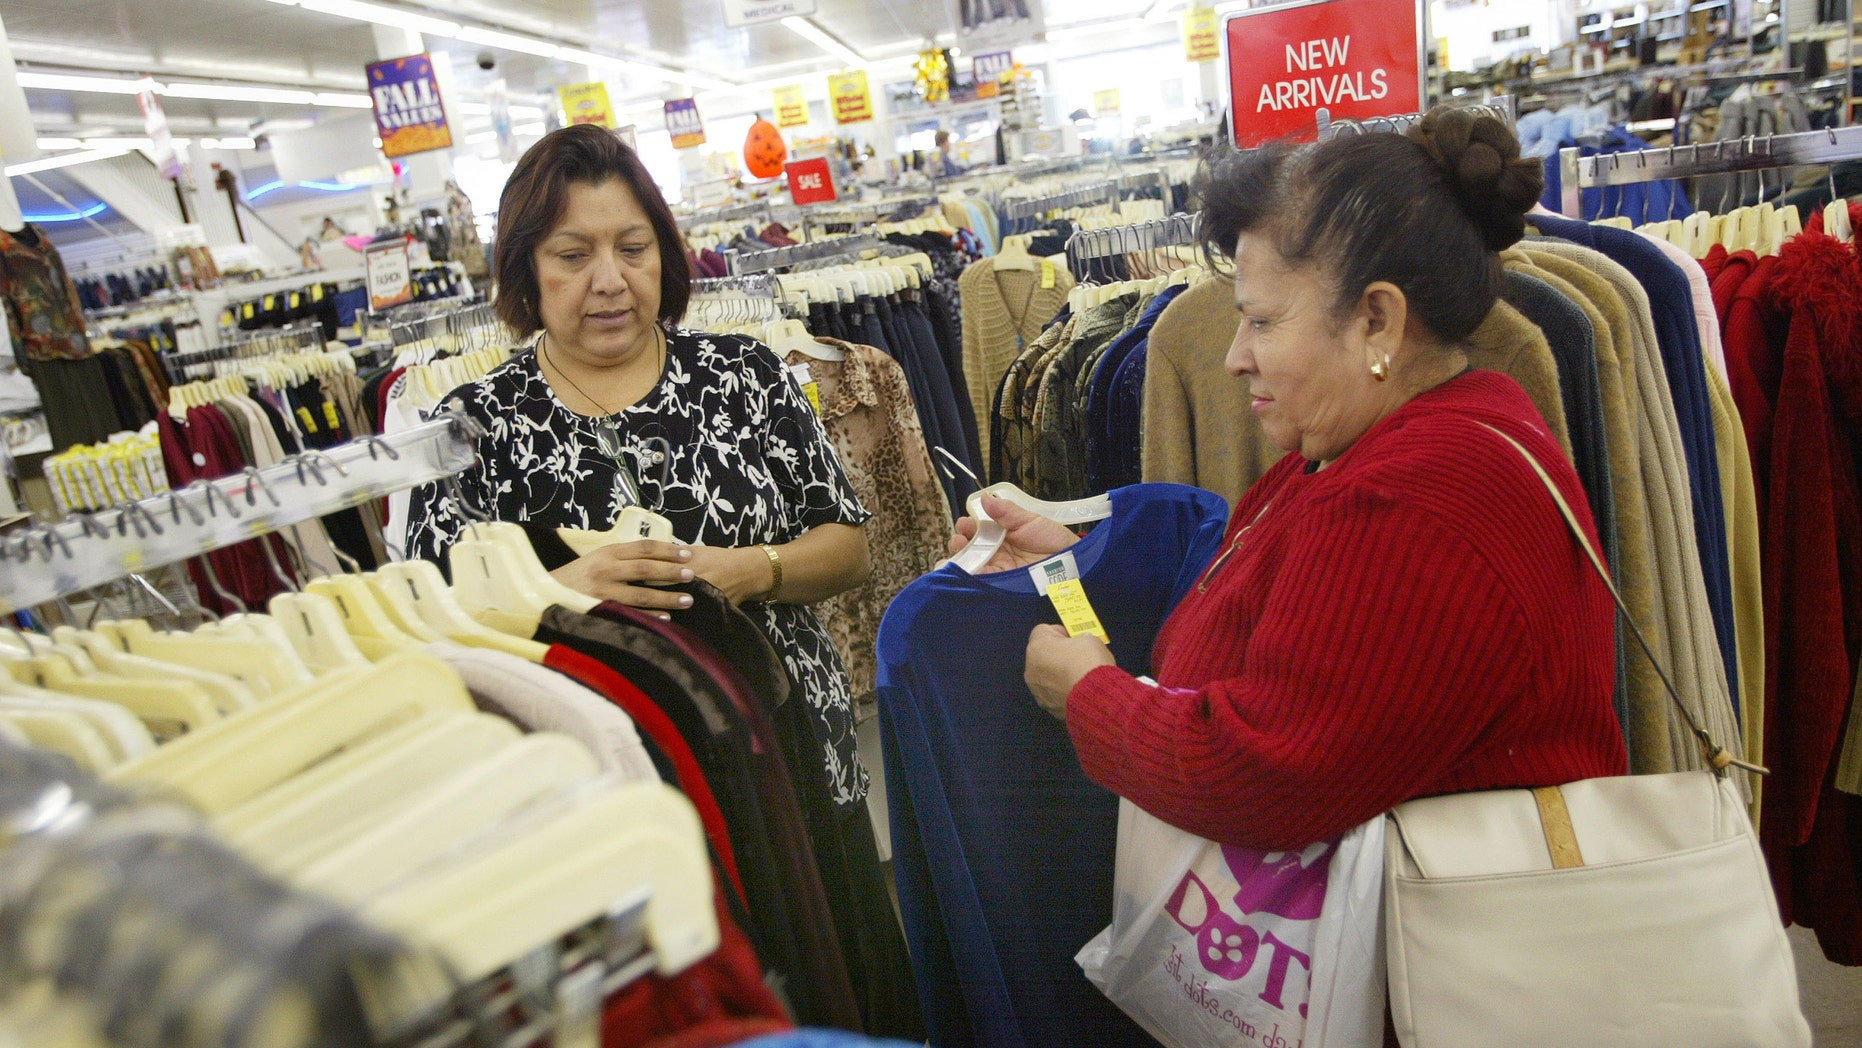 CHICAGO - OCTOBER 24:  Sales associate Maria Ayala (L) helps Carmen Anzo shop for clothing in a store located in Chicago's largely Hispanic Little Village neighborhood October 24, 2003 in Illinois. According to the U.S. Census Bureau, reports show that the nation's Hispanic population has grown to become the largest minority.  (Photo by Tim Boyle/Getty Images)